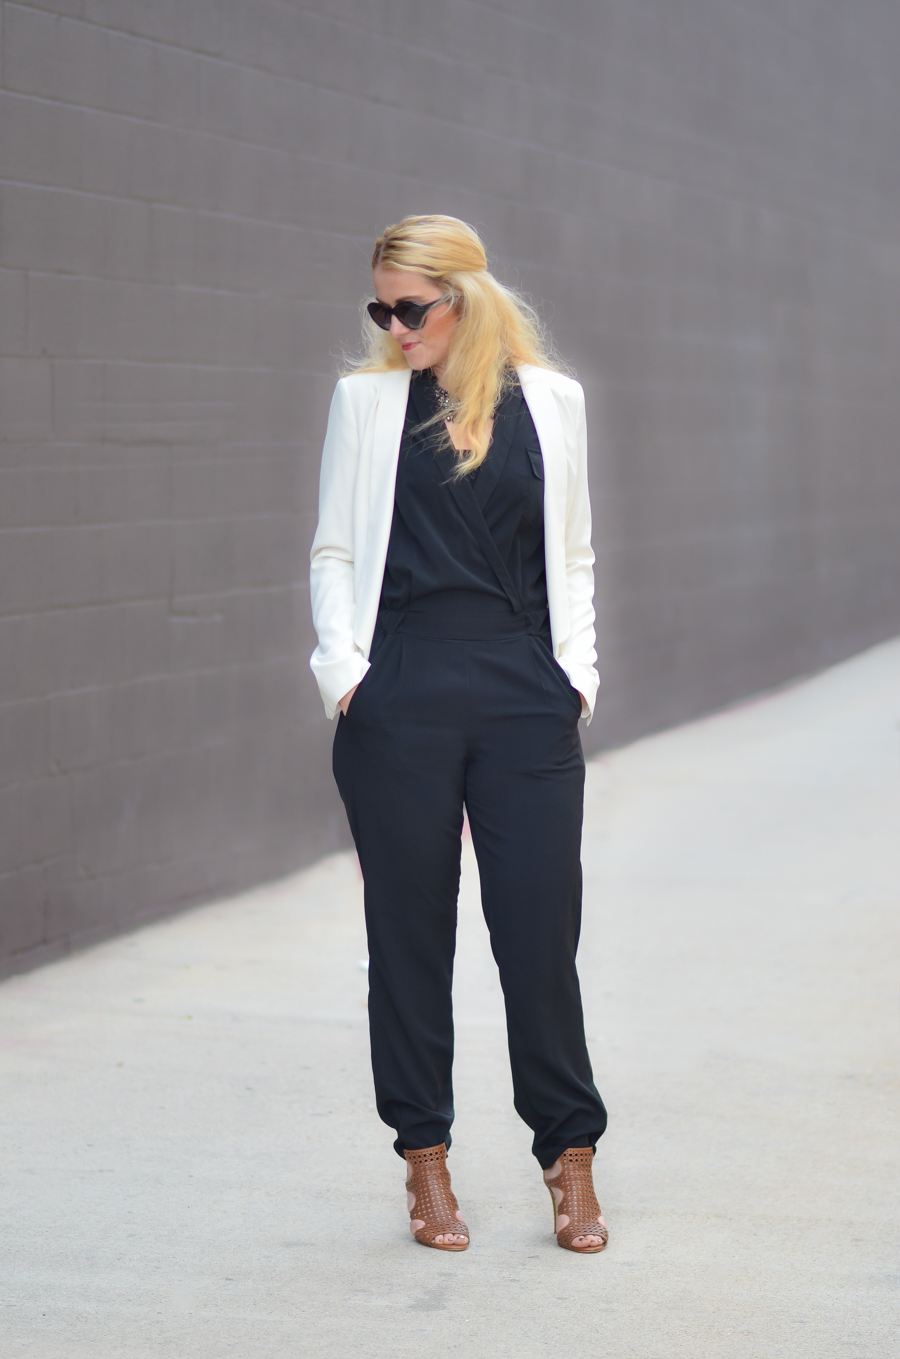 How to Style Black Jumpsuit + White Blazer | What to Wear Over a Sleeveless Jumpsuit